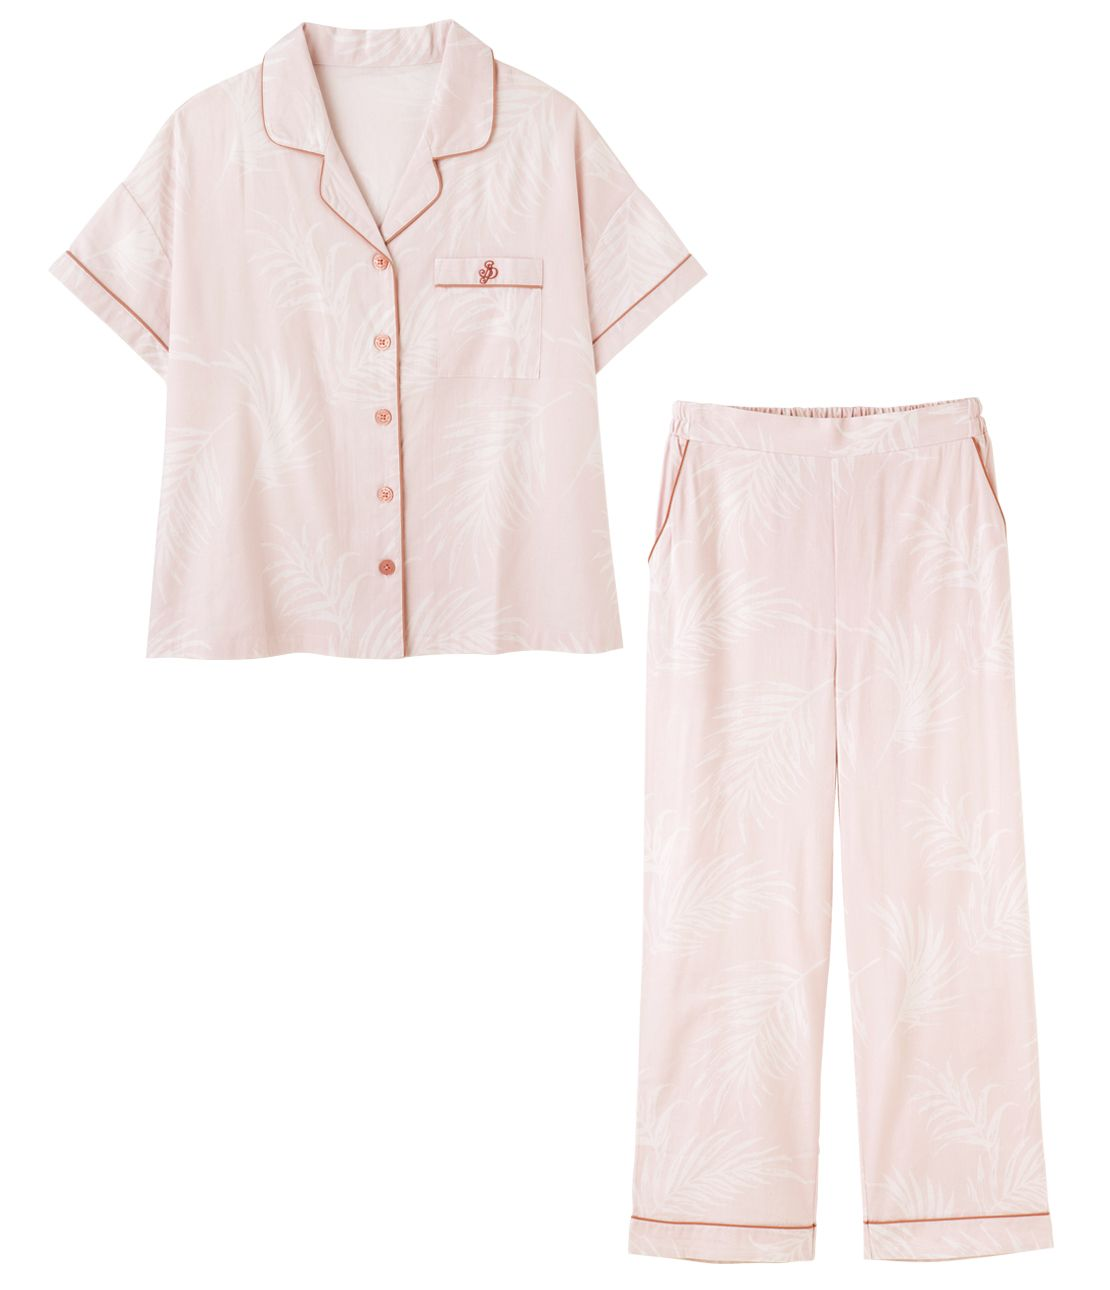 Cotton rayon linen short-sleeved shirt pajamas